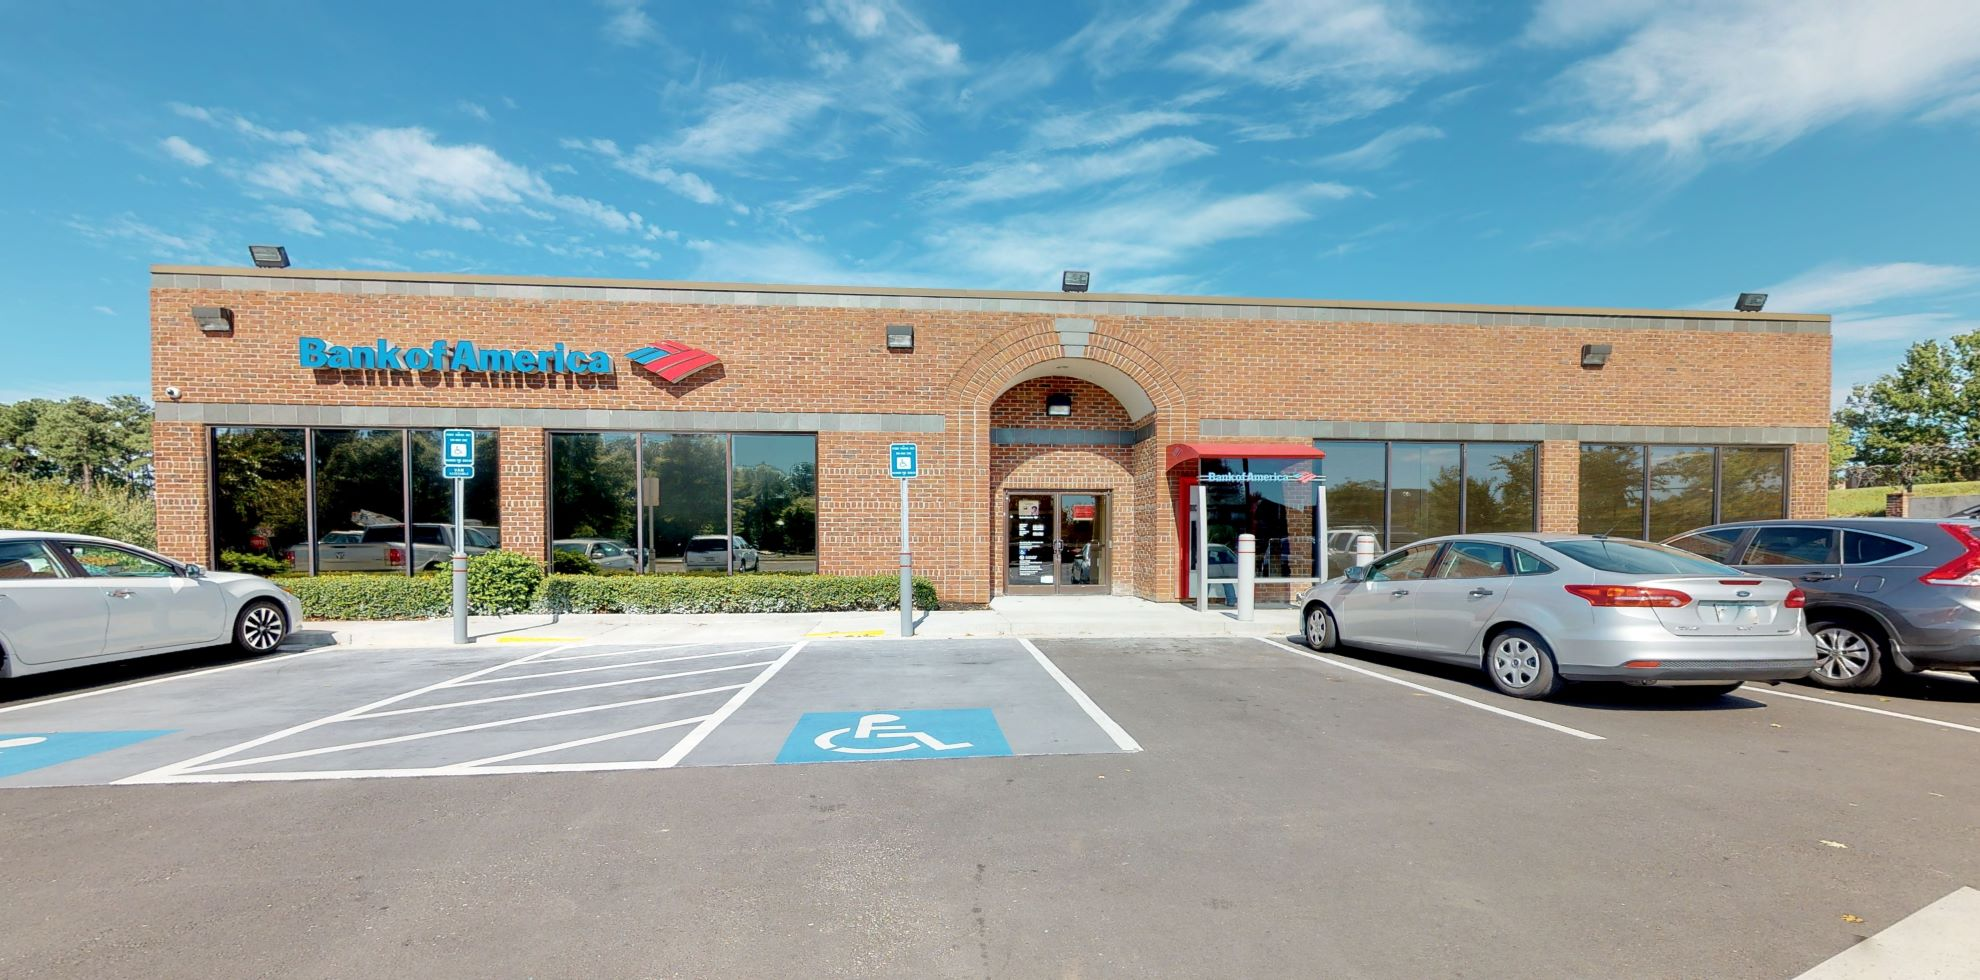 Bank of America financial center with drive-thru ATM and teller | 620 Ronald Reagan Dr, Evans, GA 30809